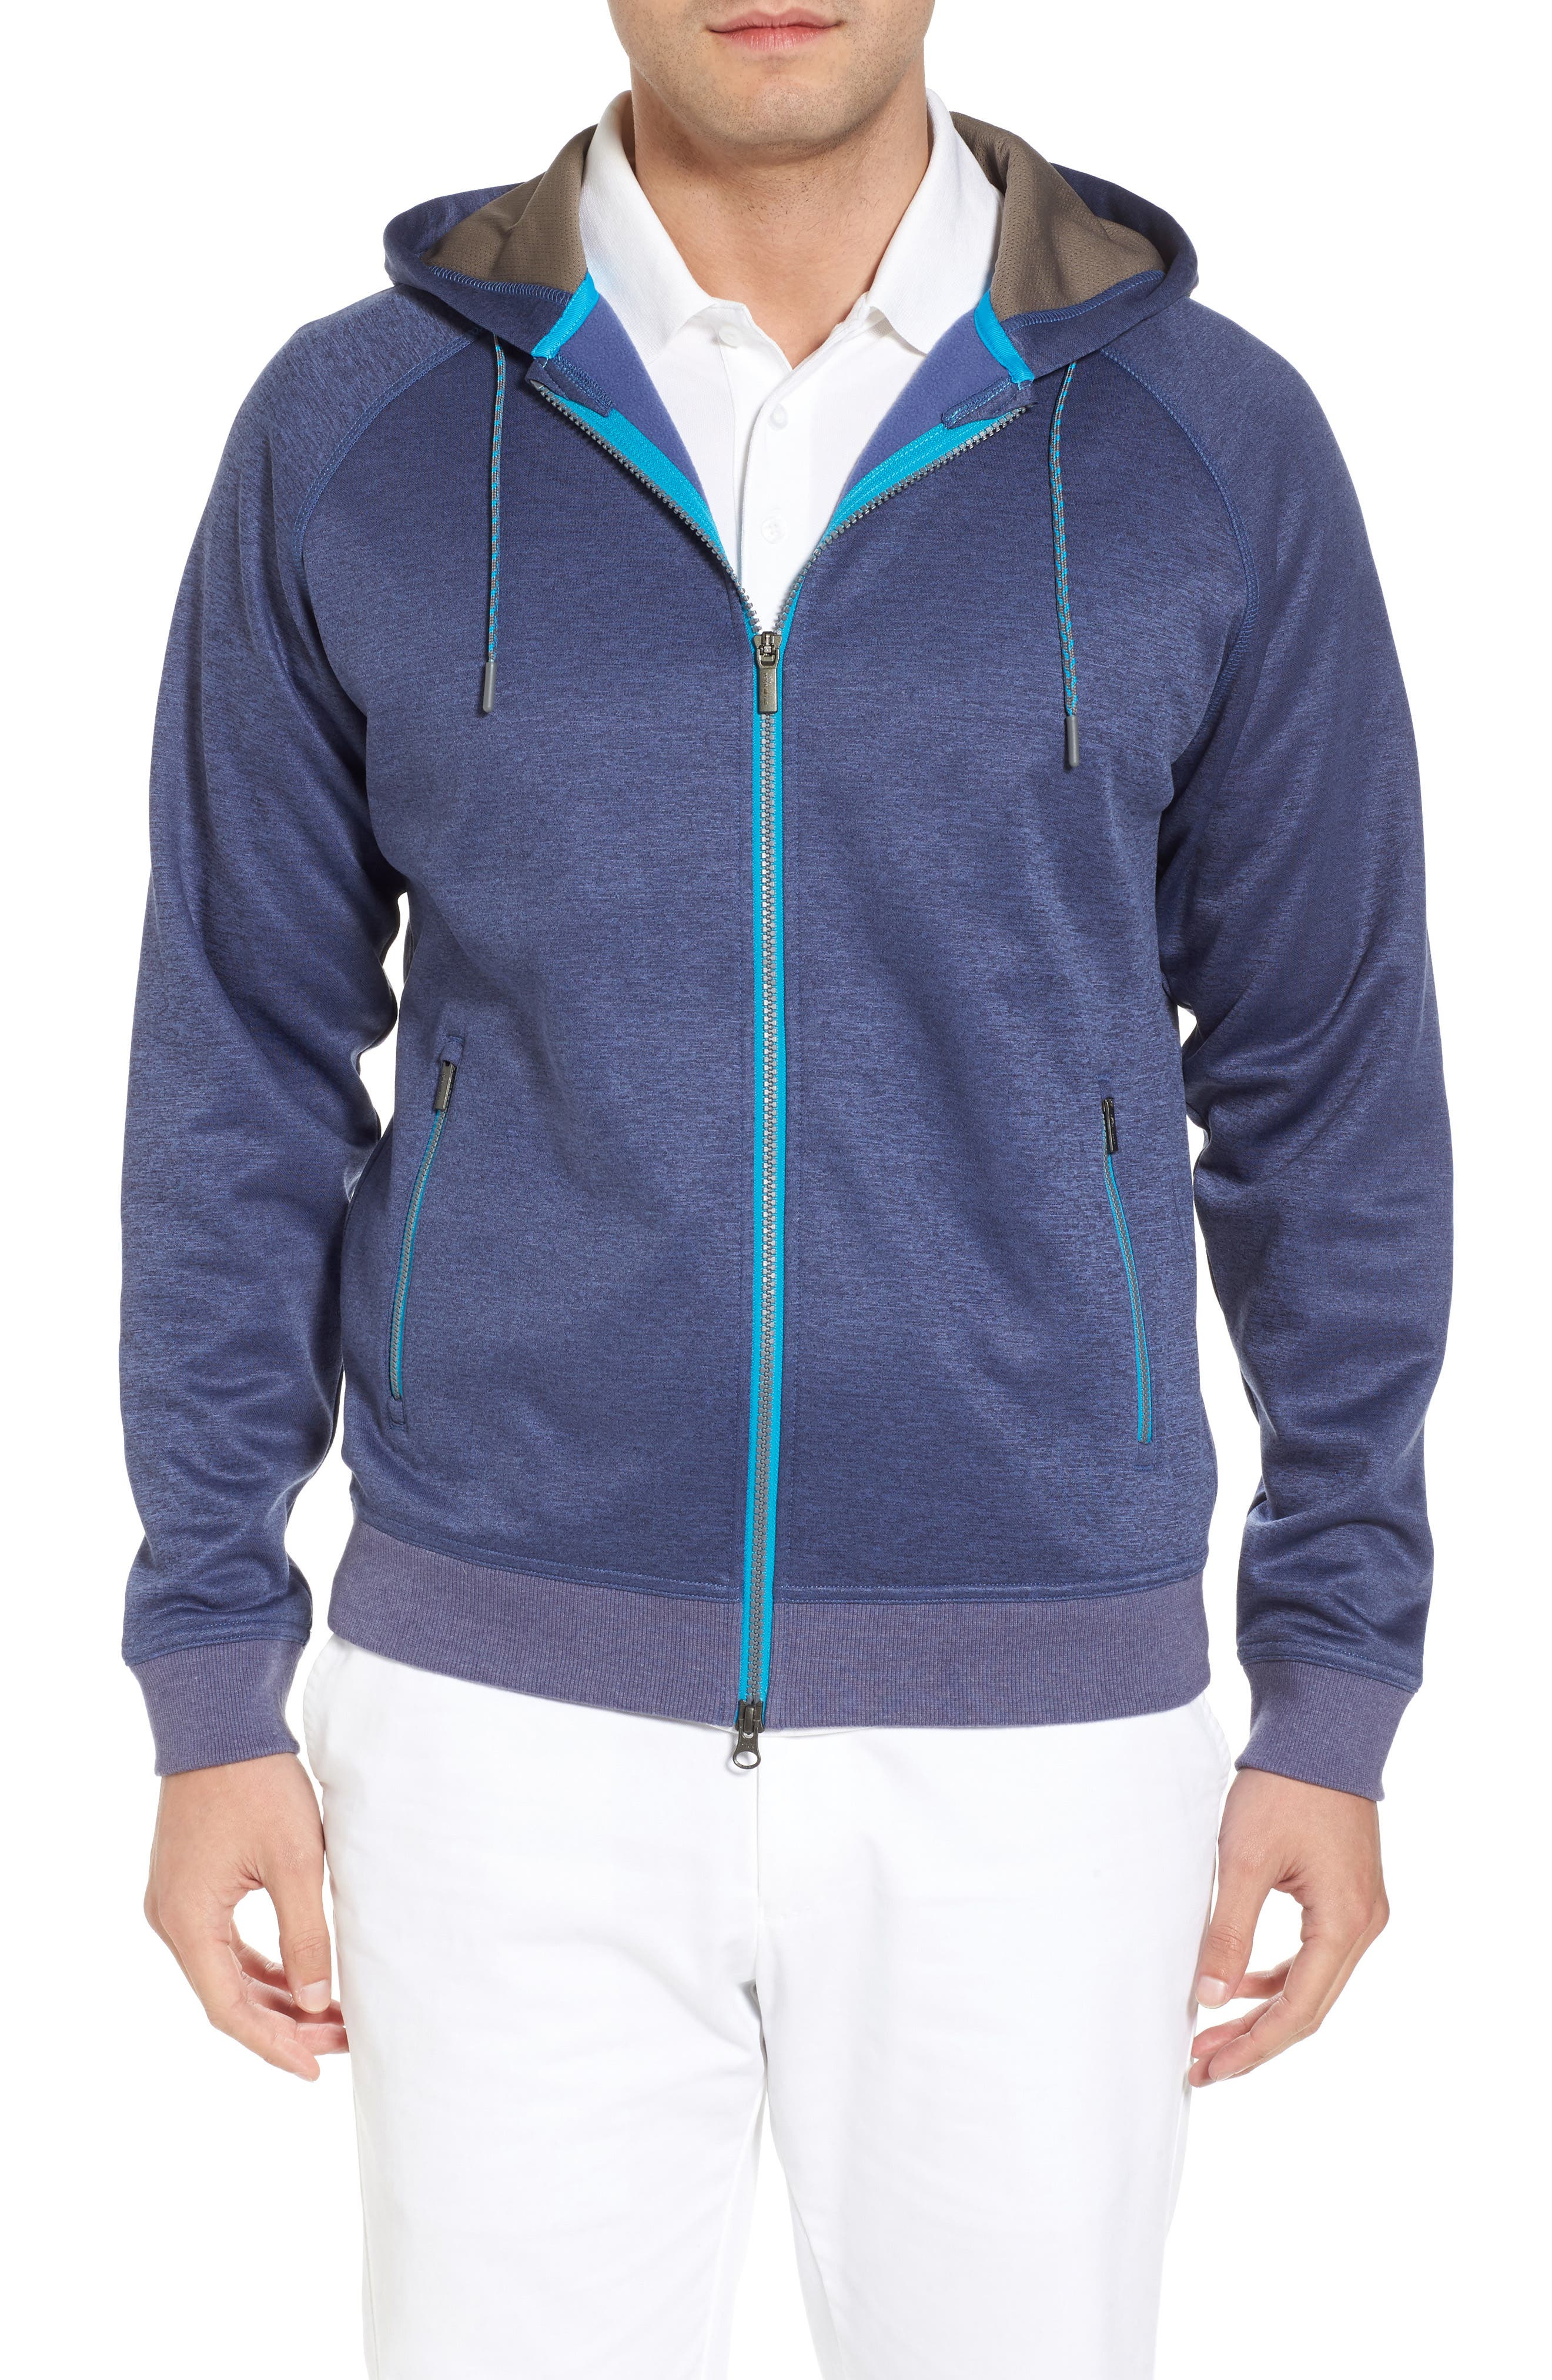 Placid Hoodie,                             Main thumbnail 1, color,                             400